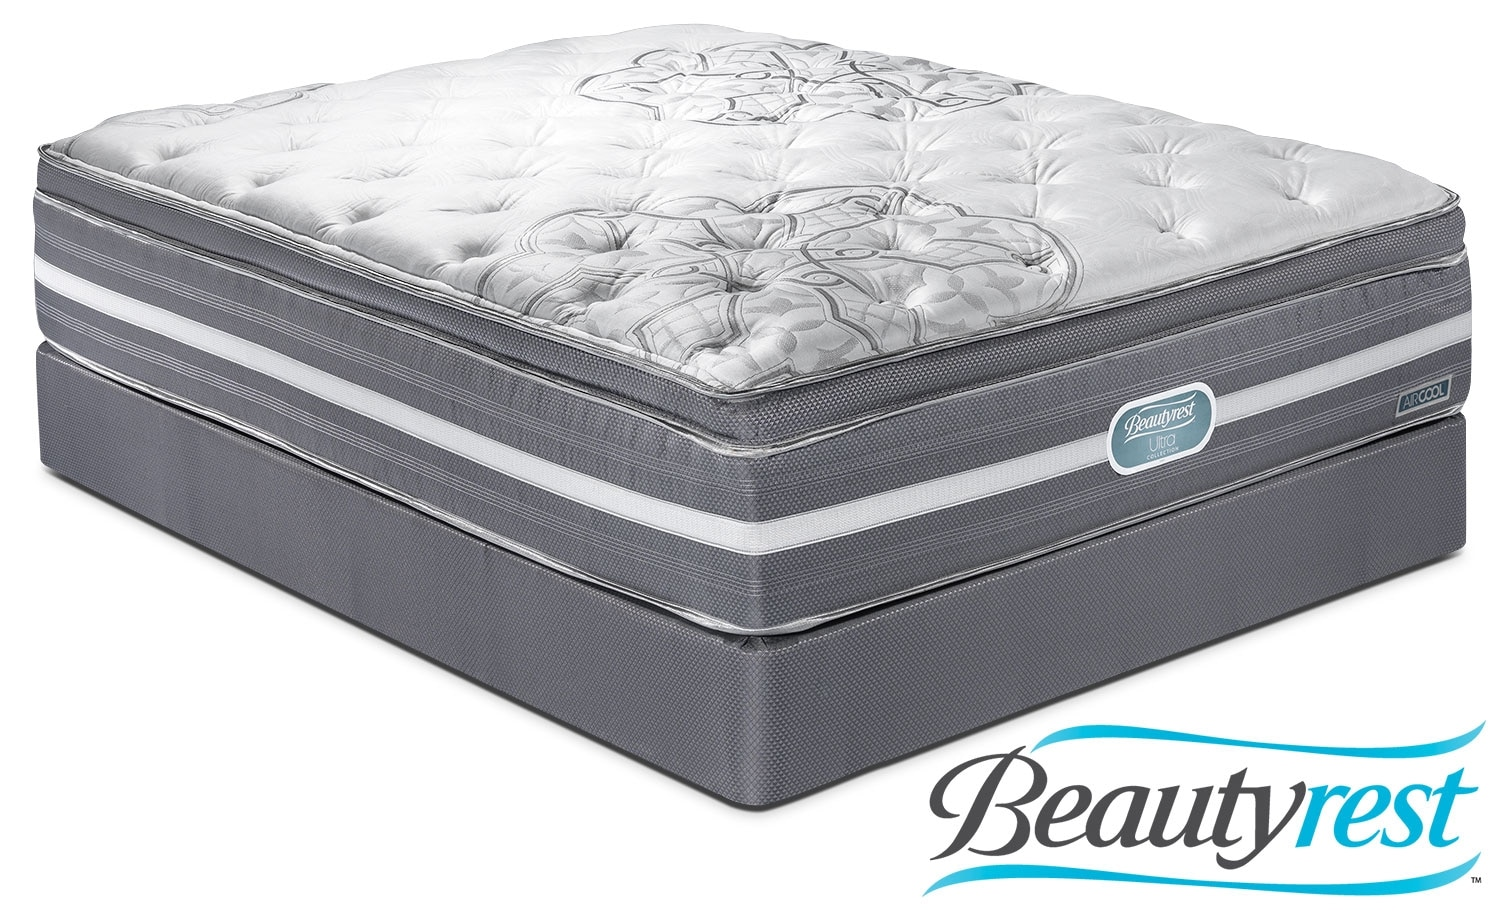 Mattresses and Bedding - Simmons Grand Luxe Firm Queen Mattress/Boxspring Set